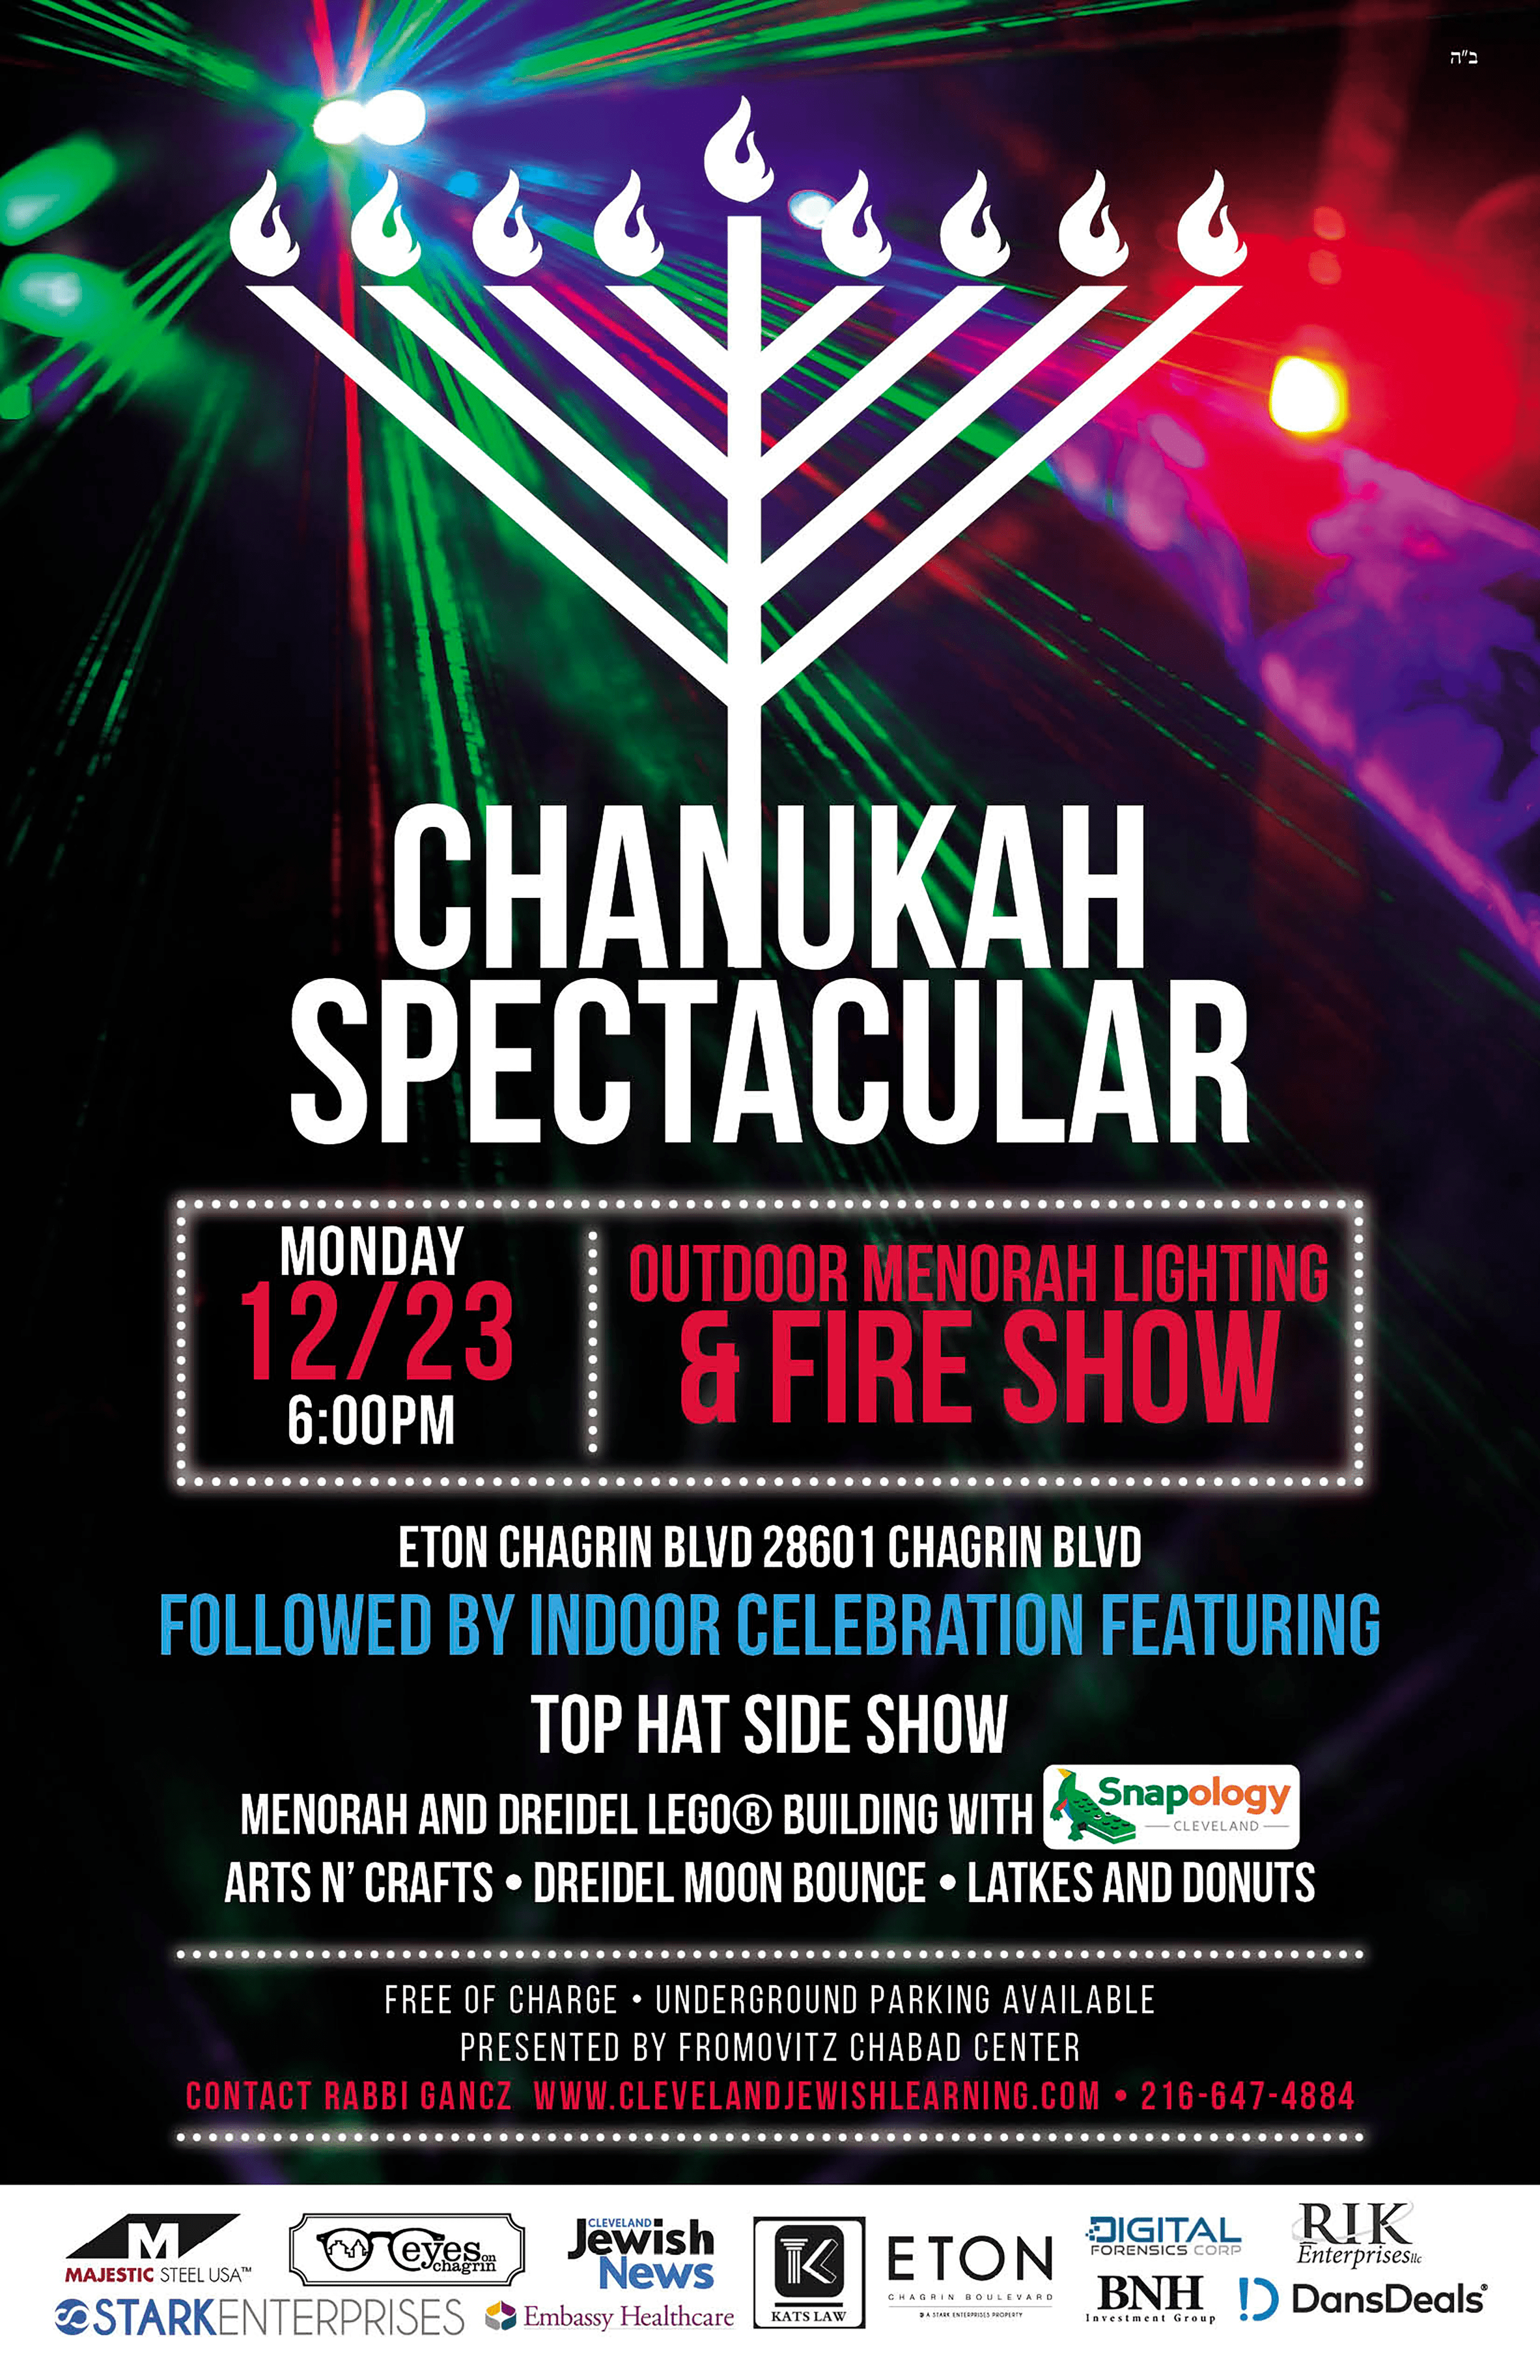 Chanukah Spectacular